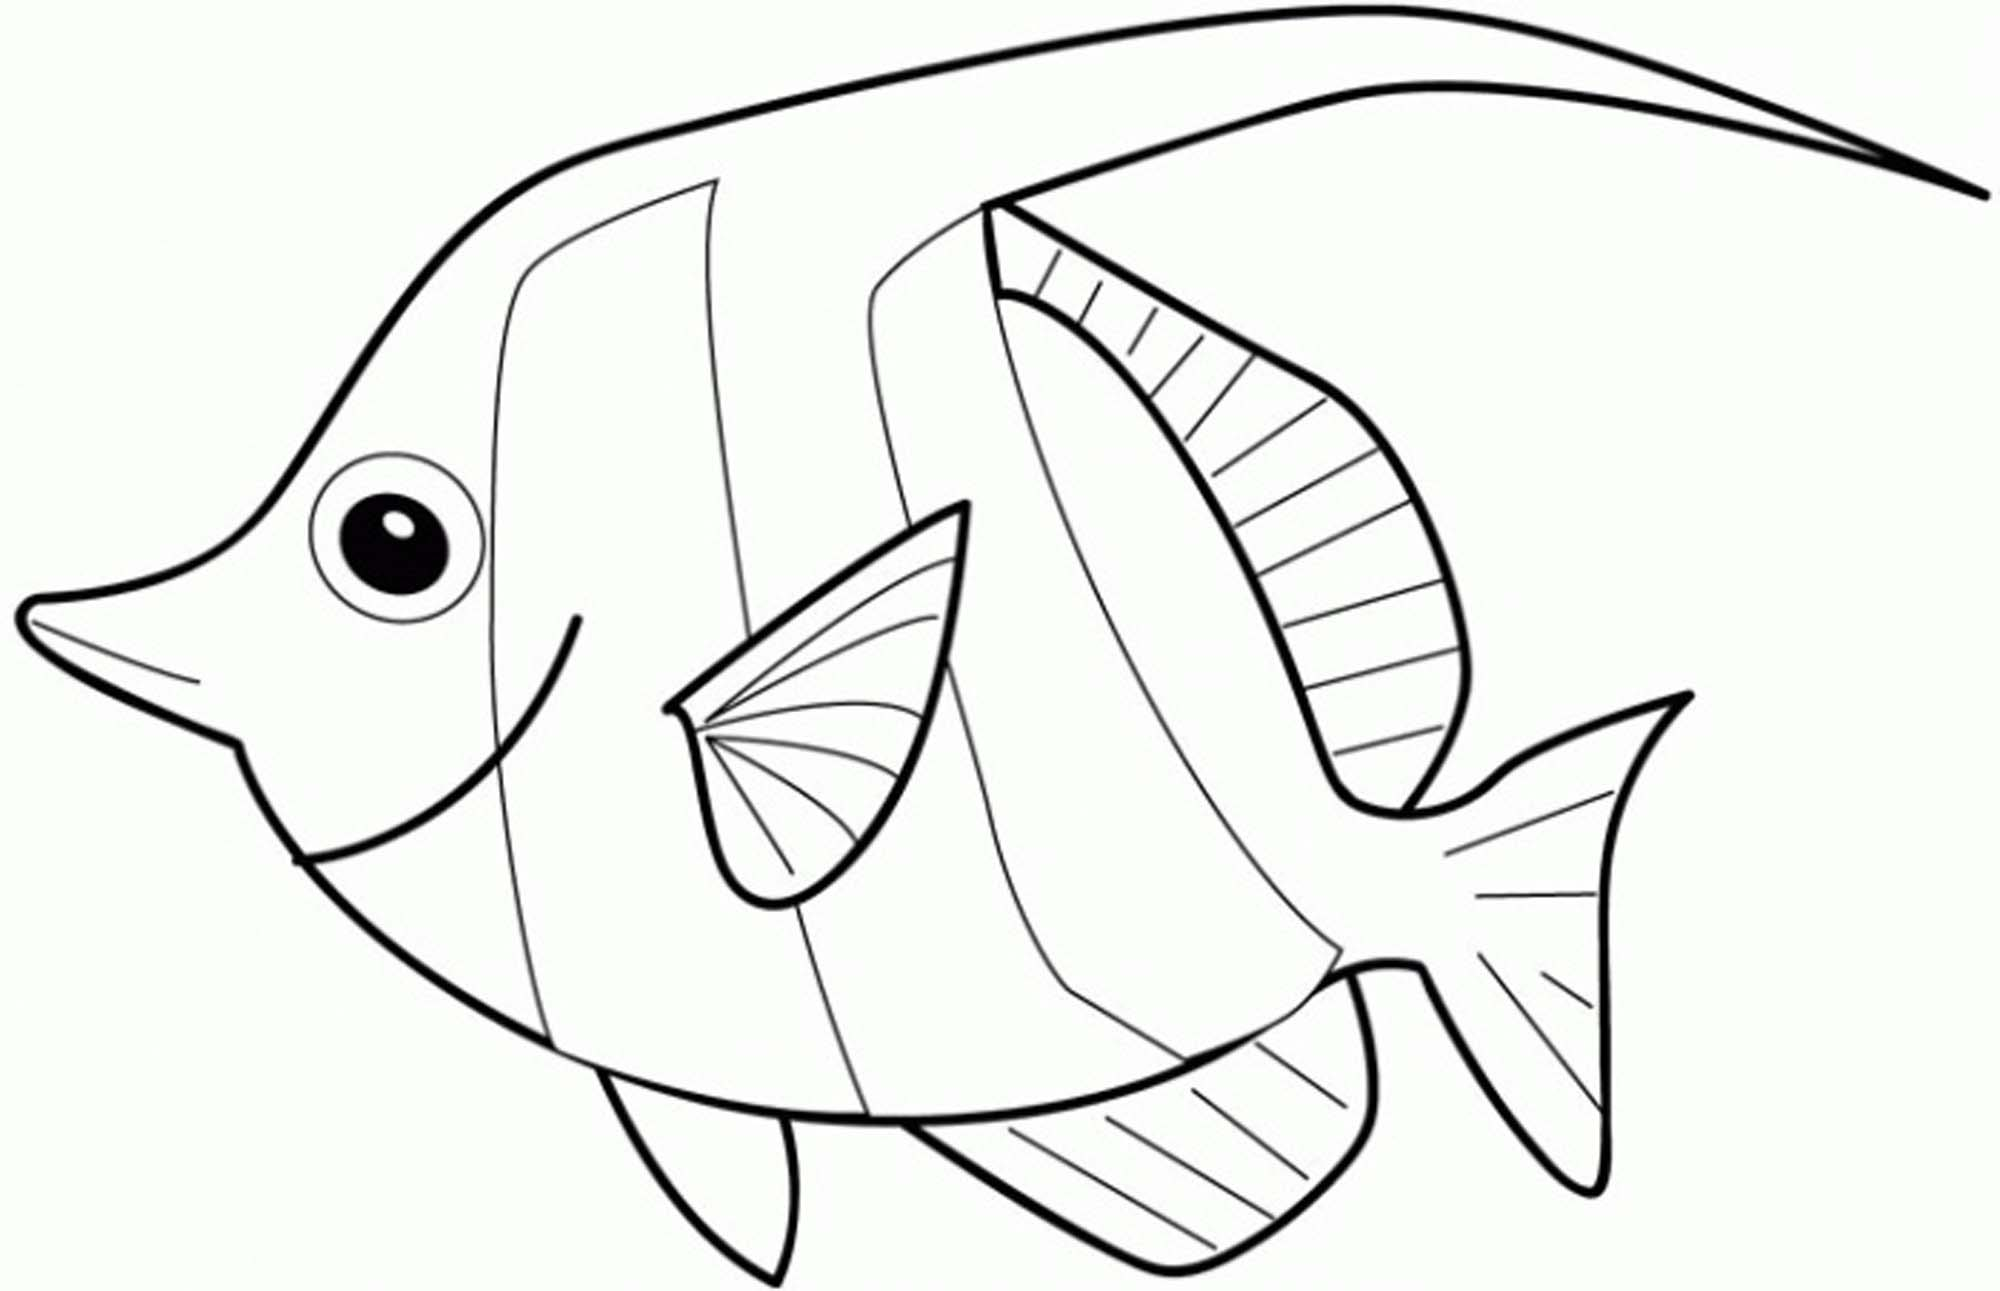 Rainbow Fish Coloring Page Printable Kids Colouring Pages